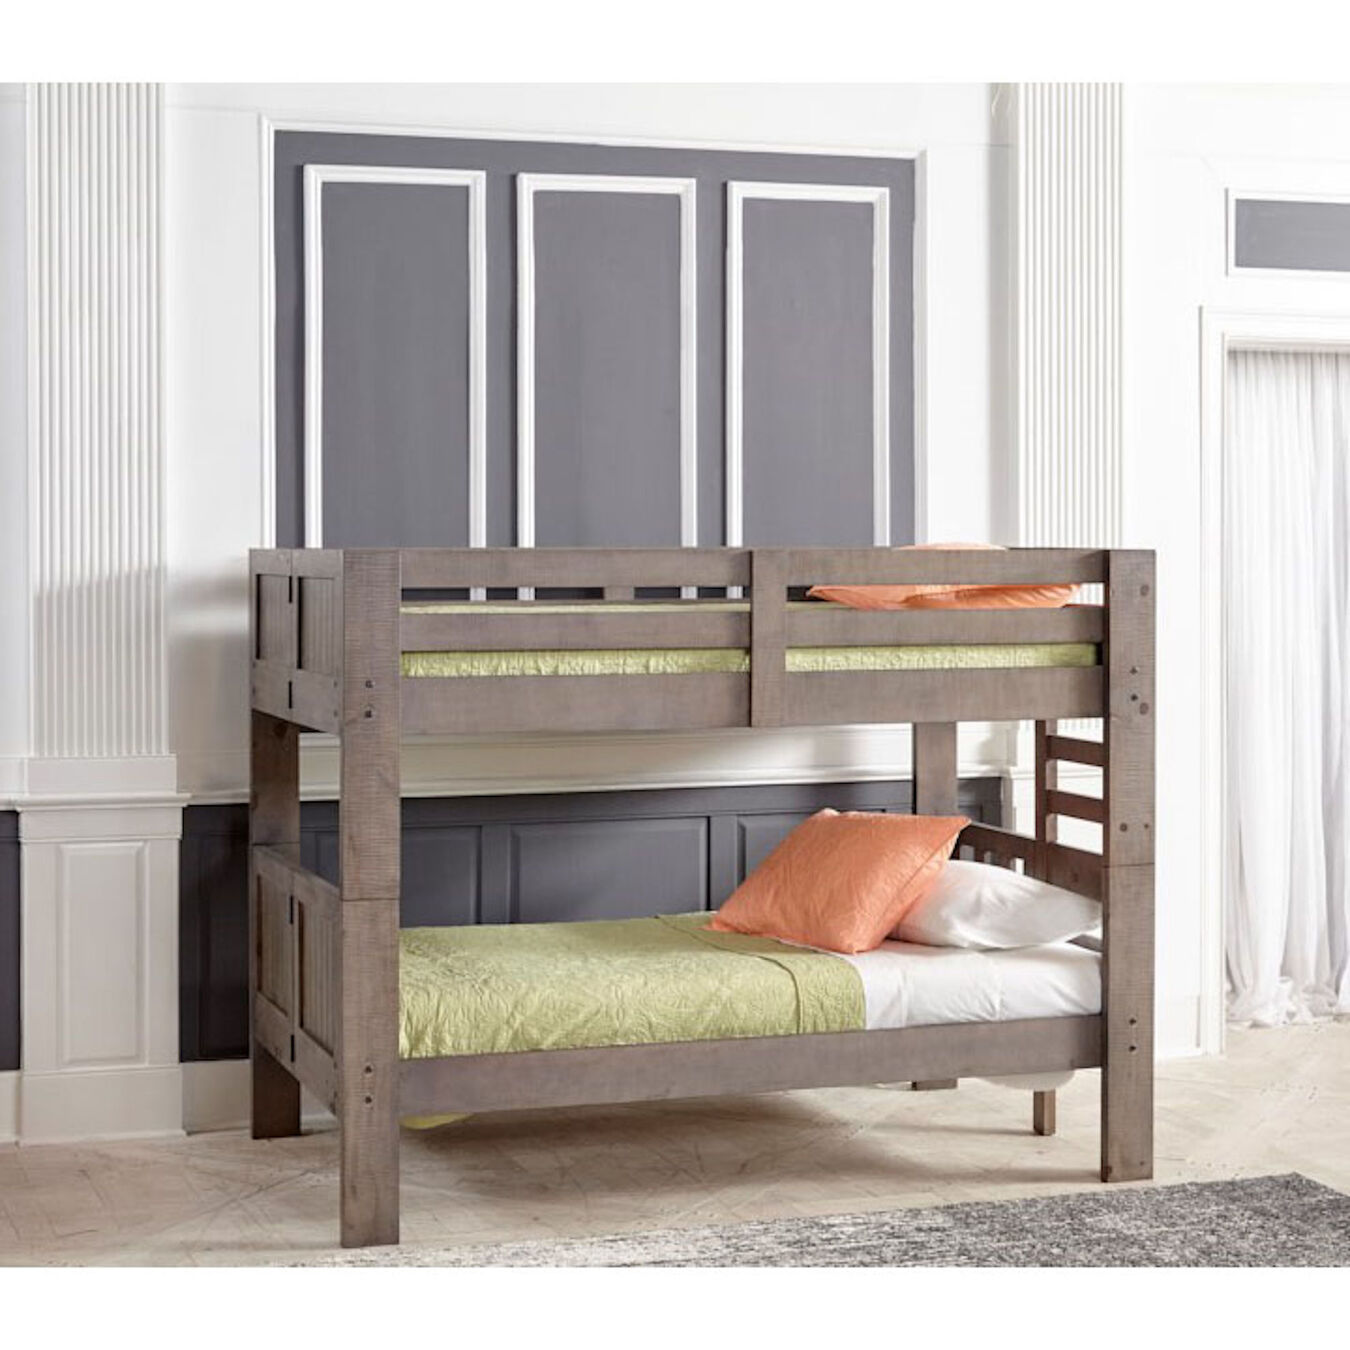 bunk bed twin mattress set Oak Furniture West Bedroom Groups 7 Piece Twin Bunk Bed with  bunk bed twin mattress set